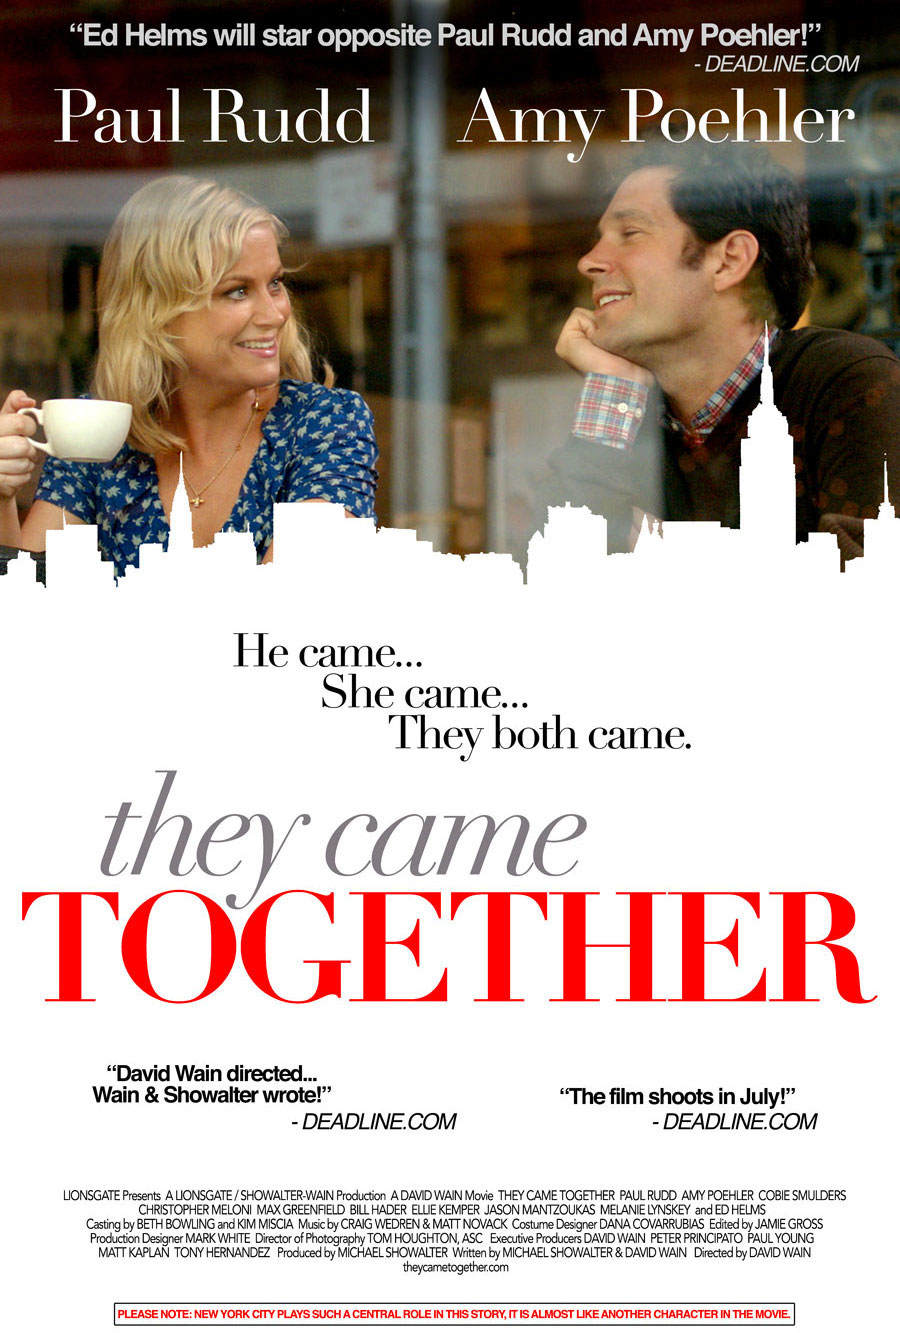 THEY-CAME-TOGETHER-Official-Poster-Banner-XLG-13MAIO2014